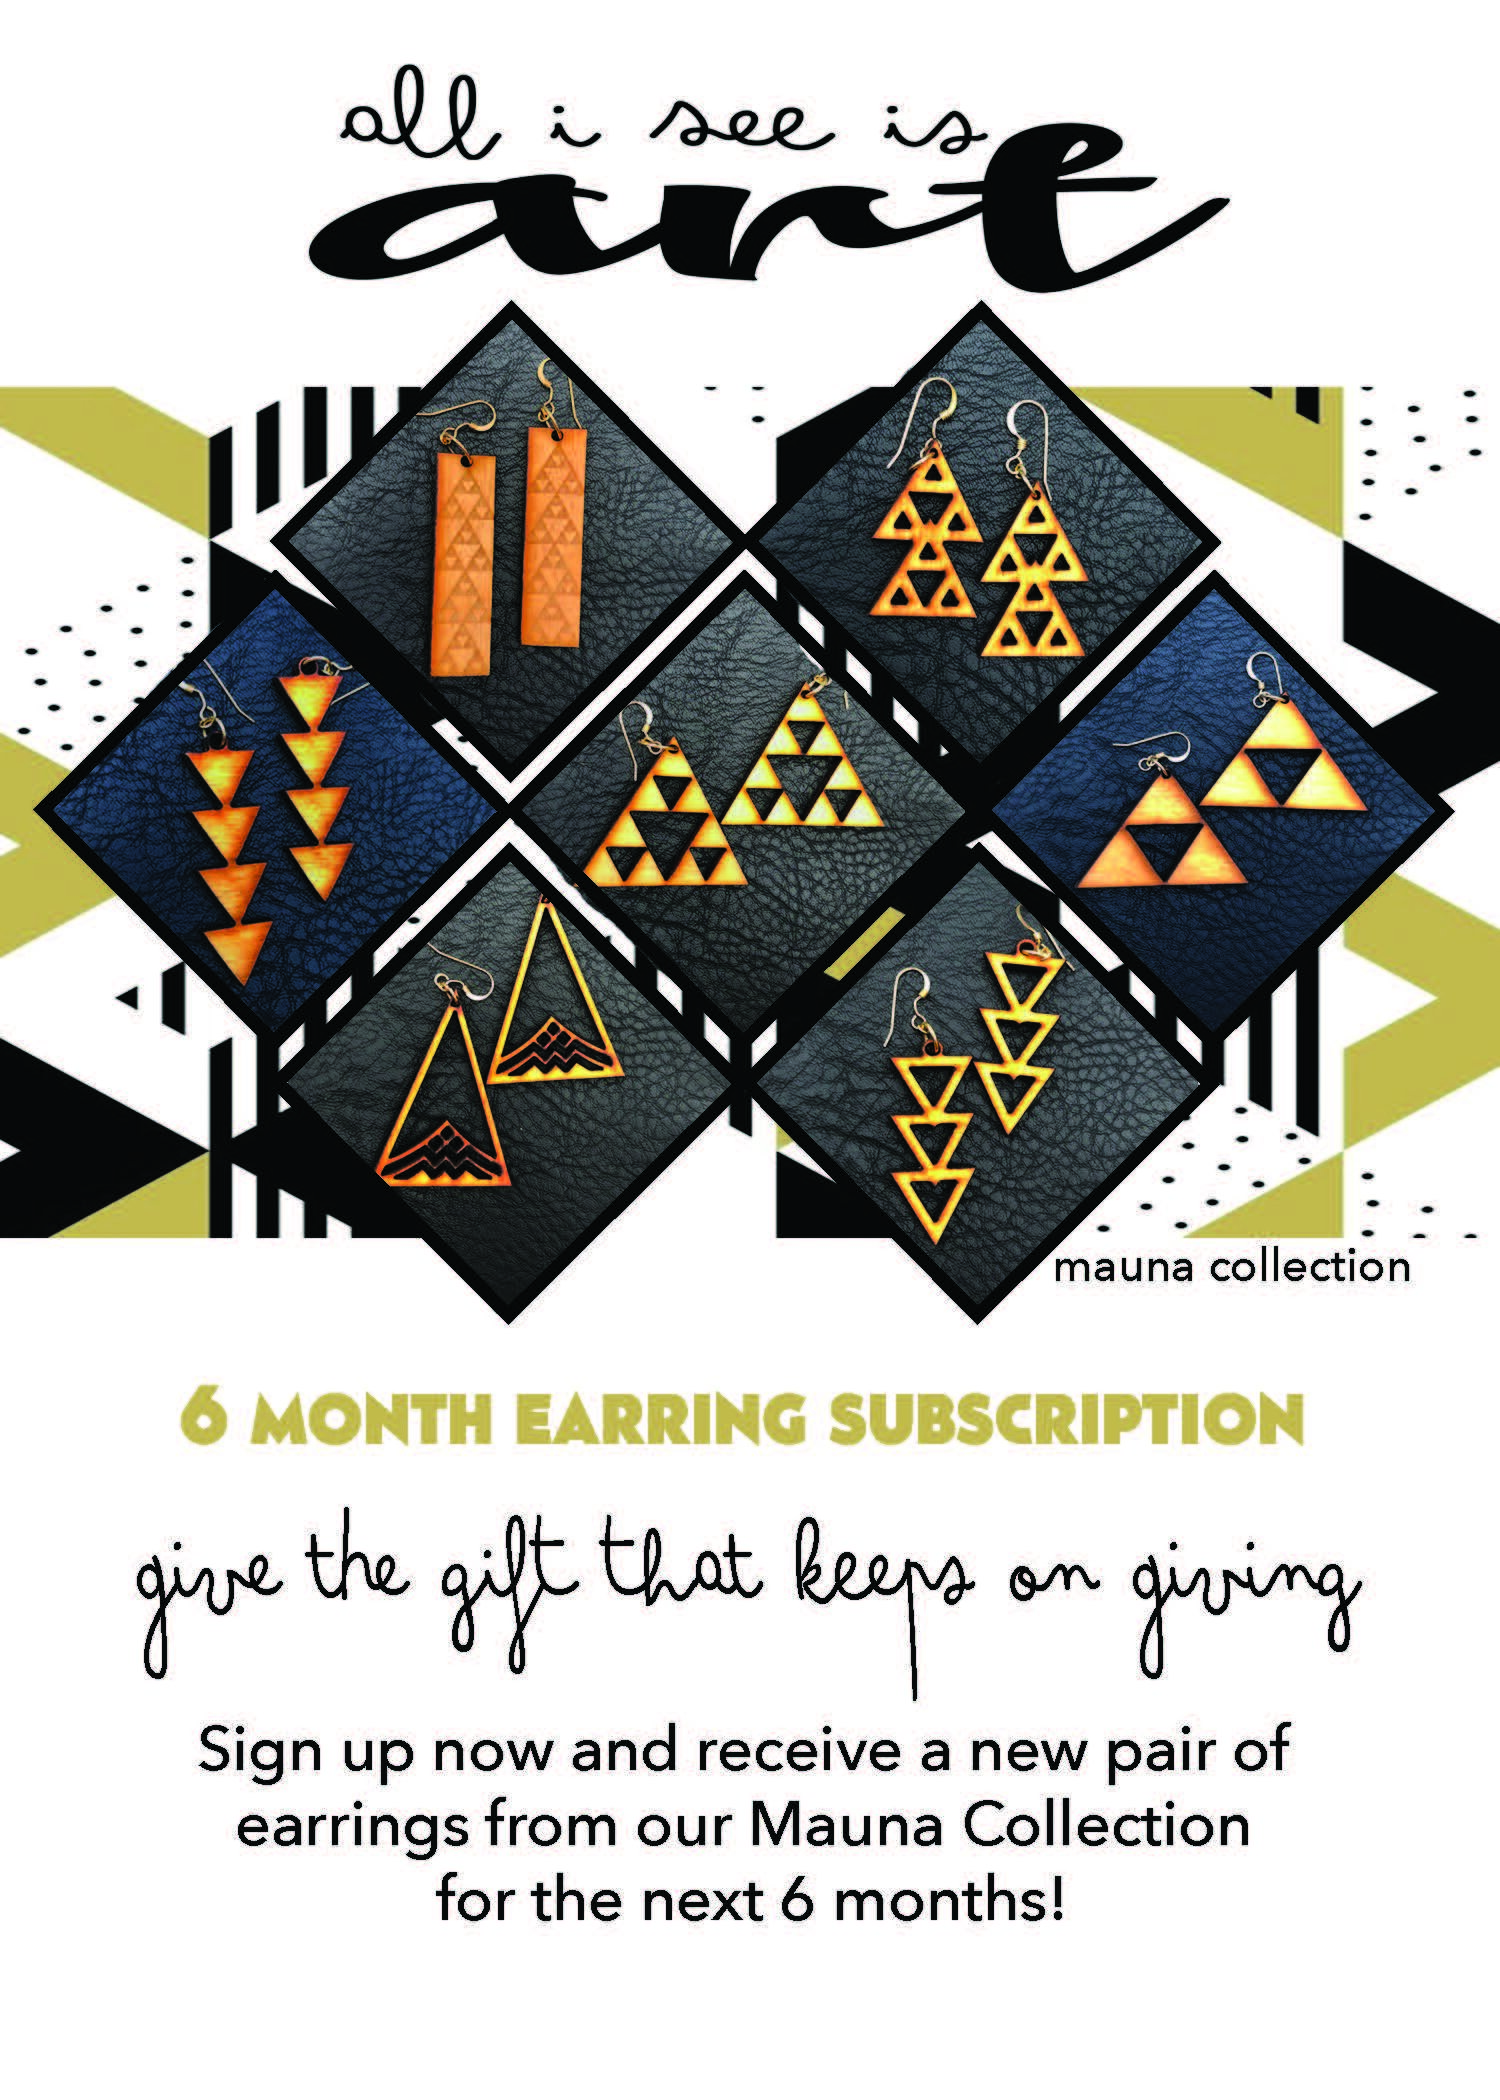 6 MONTHEARRING CLUB - Subscription Opportunity: Exclusive $200 introduction at the Made in Maui County Festival on November 1 & 2 at the MACC!Get a new pair of Mauna earrings shipped to you every month for 6 months!!! The perfect gift for yourself or your best friend.ONLY $200 at MIMCFSeries: Mauna CollectionNormal retail value: $265